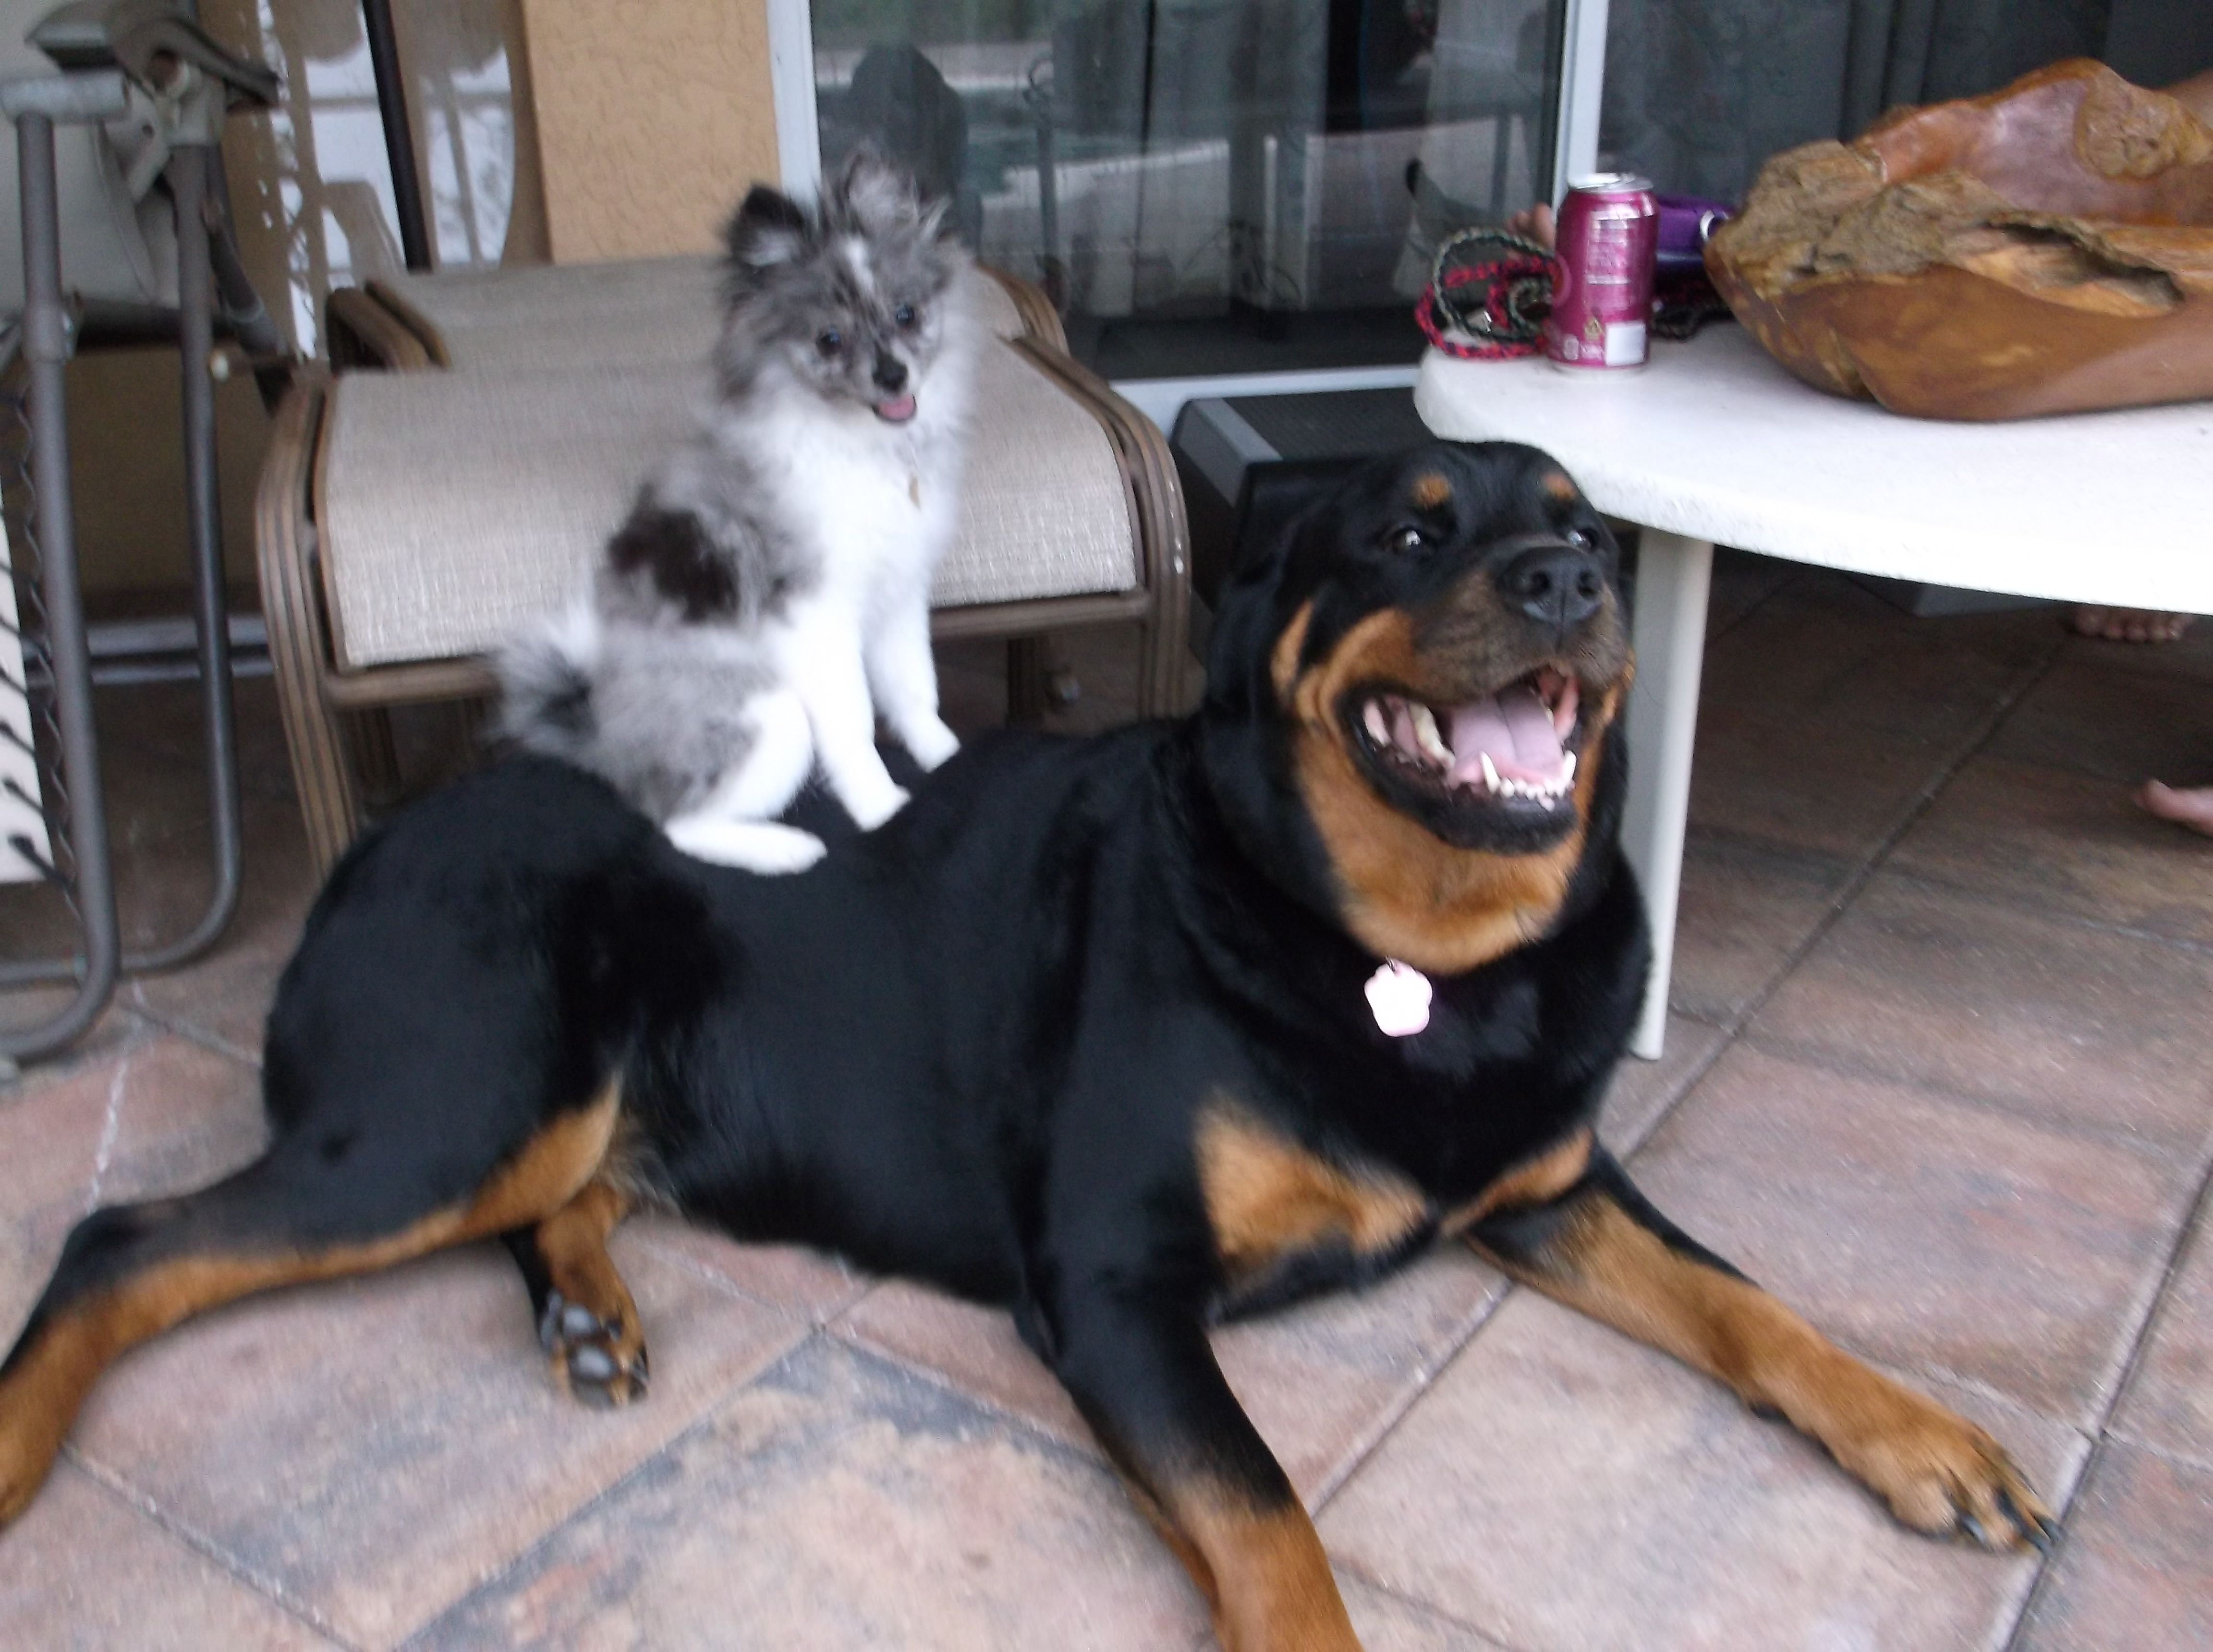 Moo The Rottweiler And Sydrah The Pomeranian Love Each Other